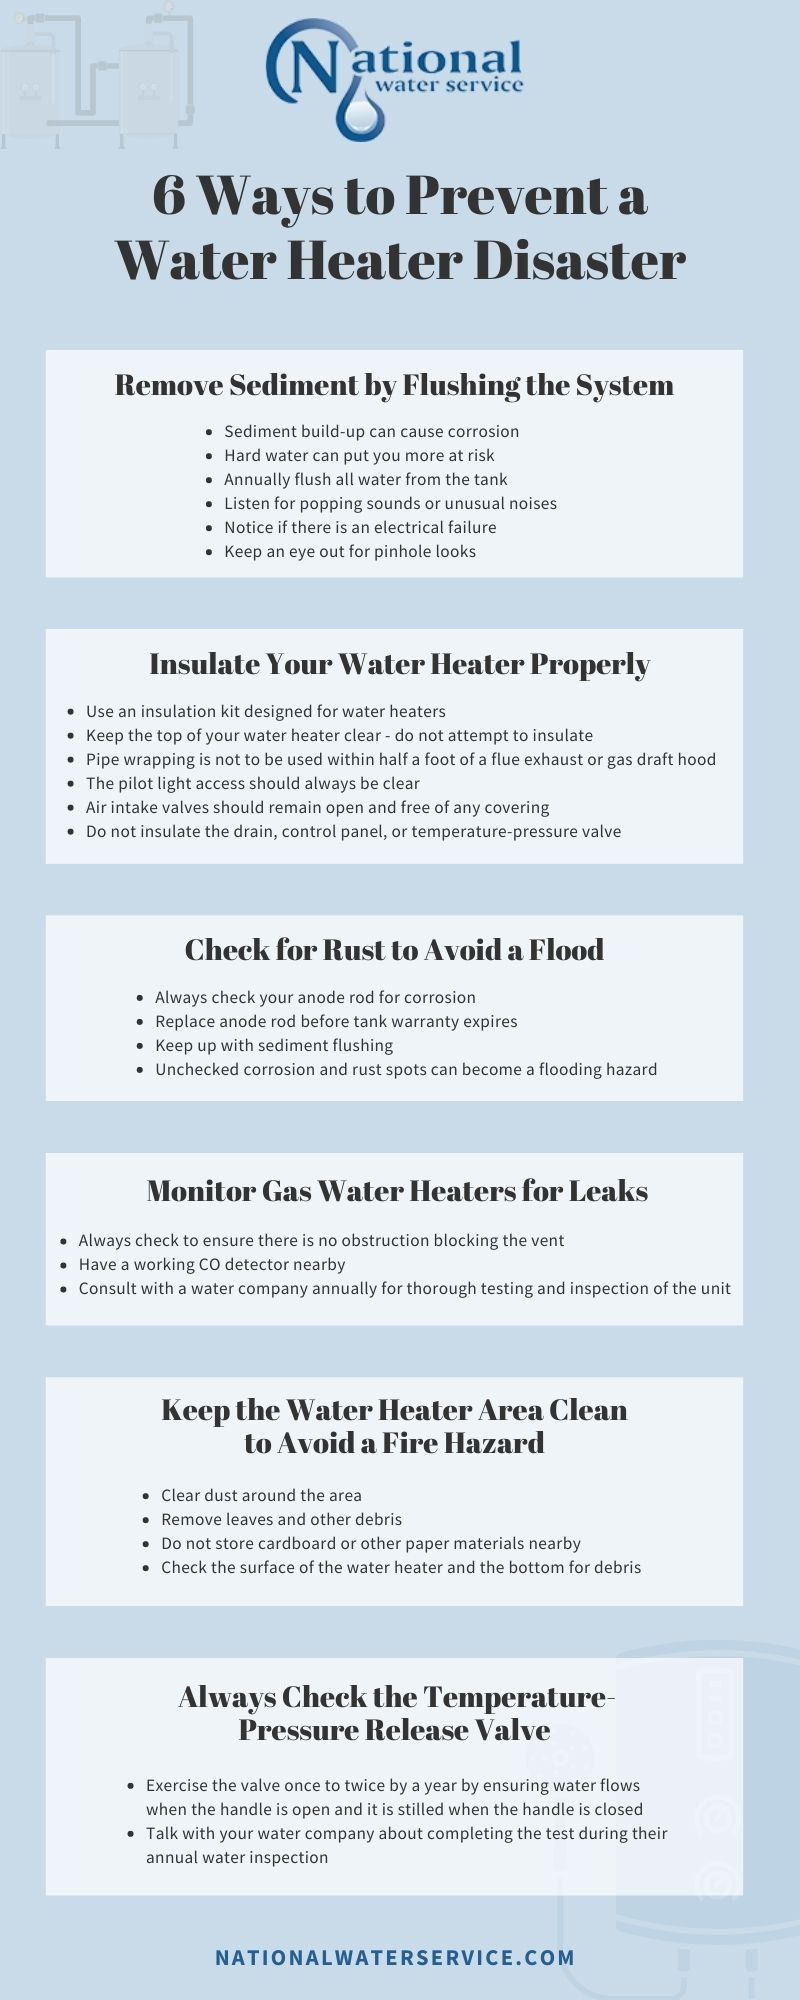 6 Ways to Prevent a Water Heater Disaster Infographic